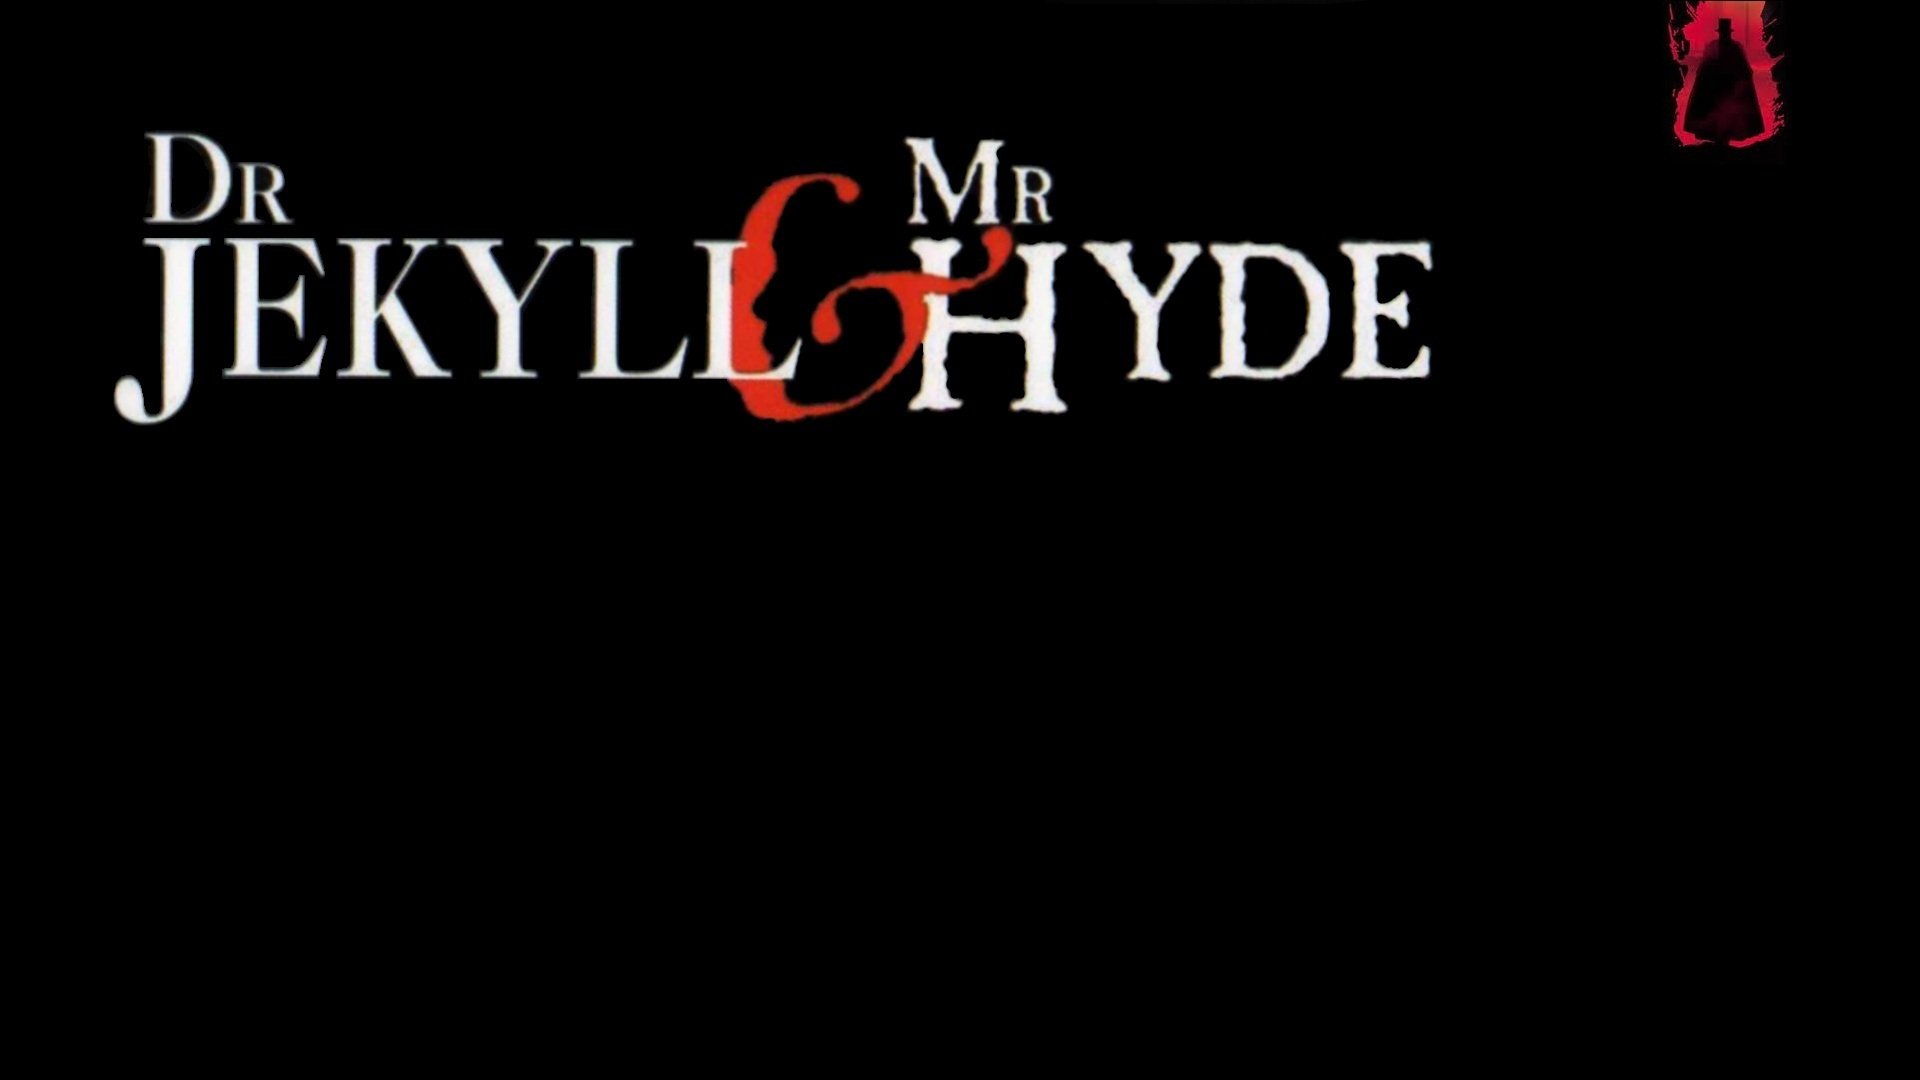 mr hyde Dr jekyll and mr hyde, this study guide strange case of dr jekyll and mr hyde is the original title of a novella written by the scottish author robert louis stevenson that was first published in 1886free study guides and book notes including comprehensive chapter analysis, complete summary analysis, author biography information, character.